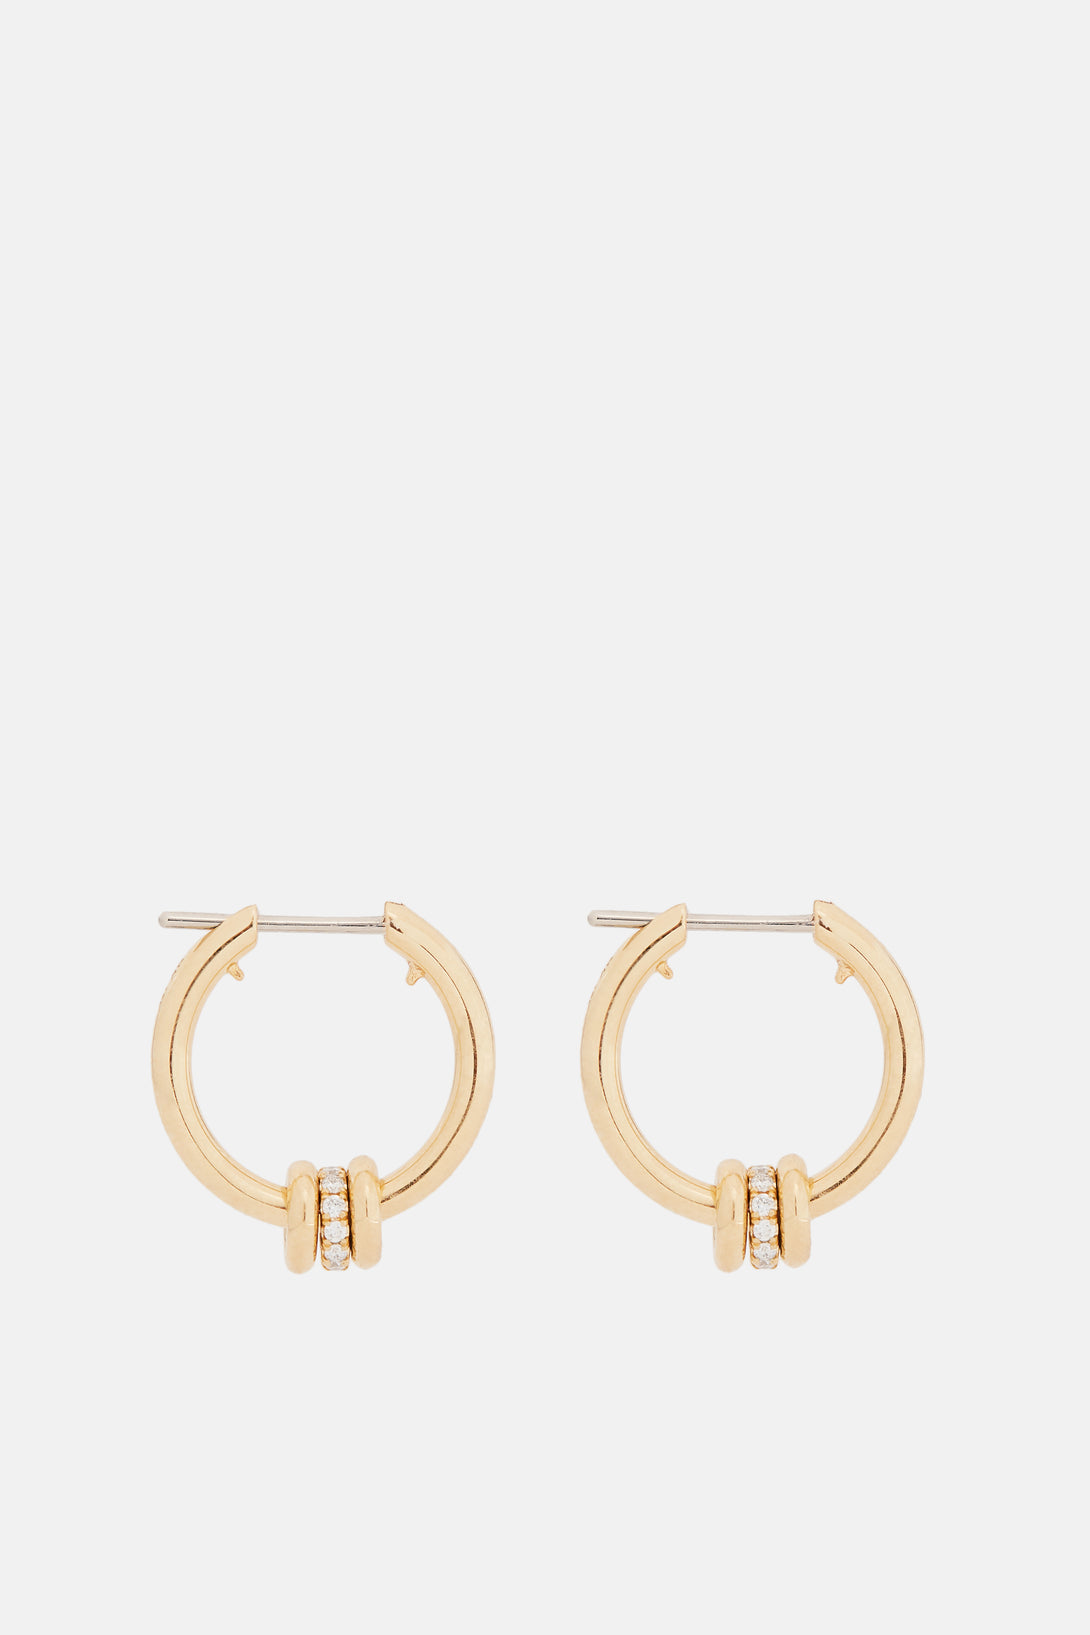 Ara Hoop Earrings with Micropave White Diamond Annulets - Yellow Gold